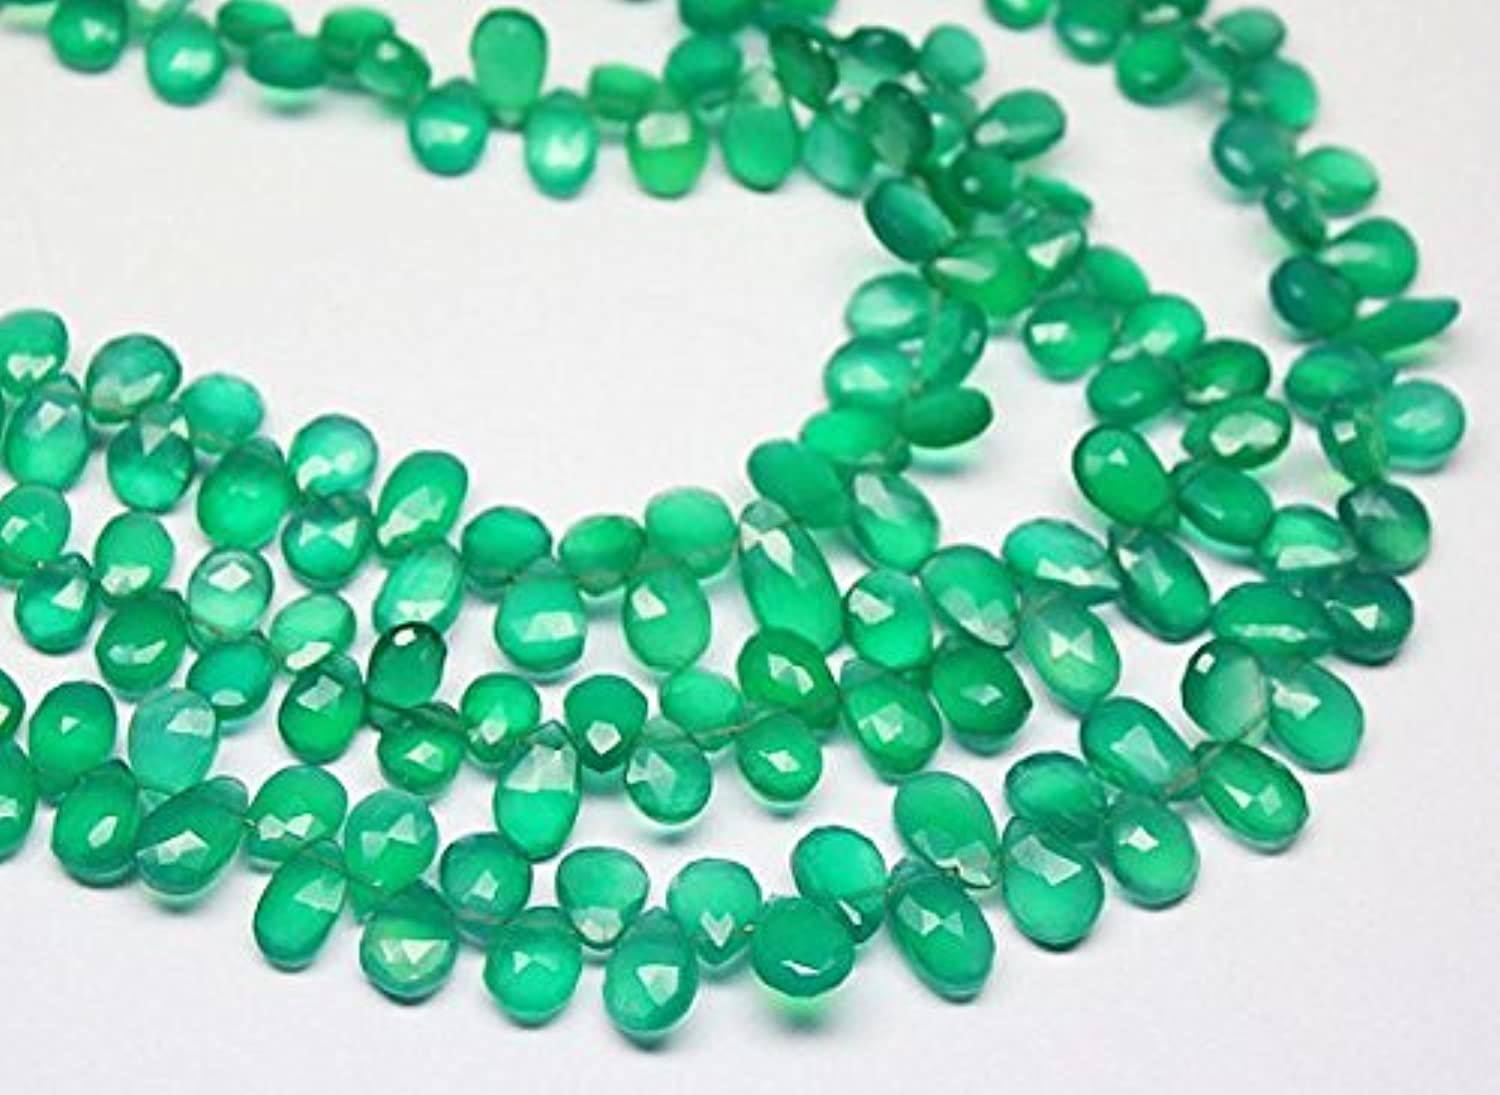 Natural verde Onyx Faceted Briolette Pear Drop Gemstone Craft Loose Beads Strand 9  7mm 11mm